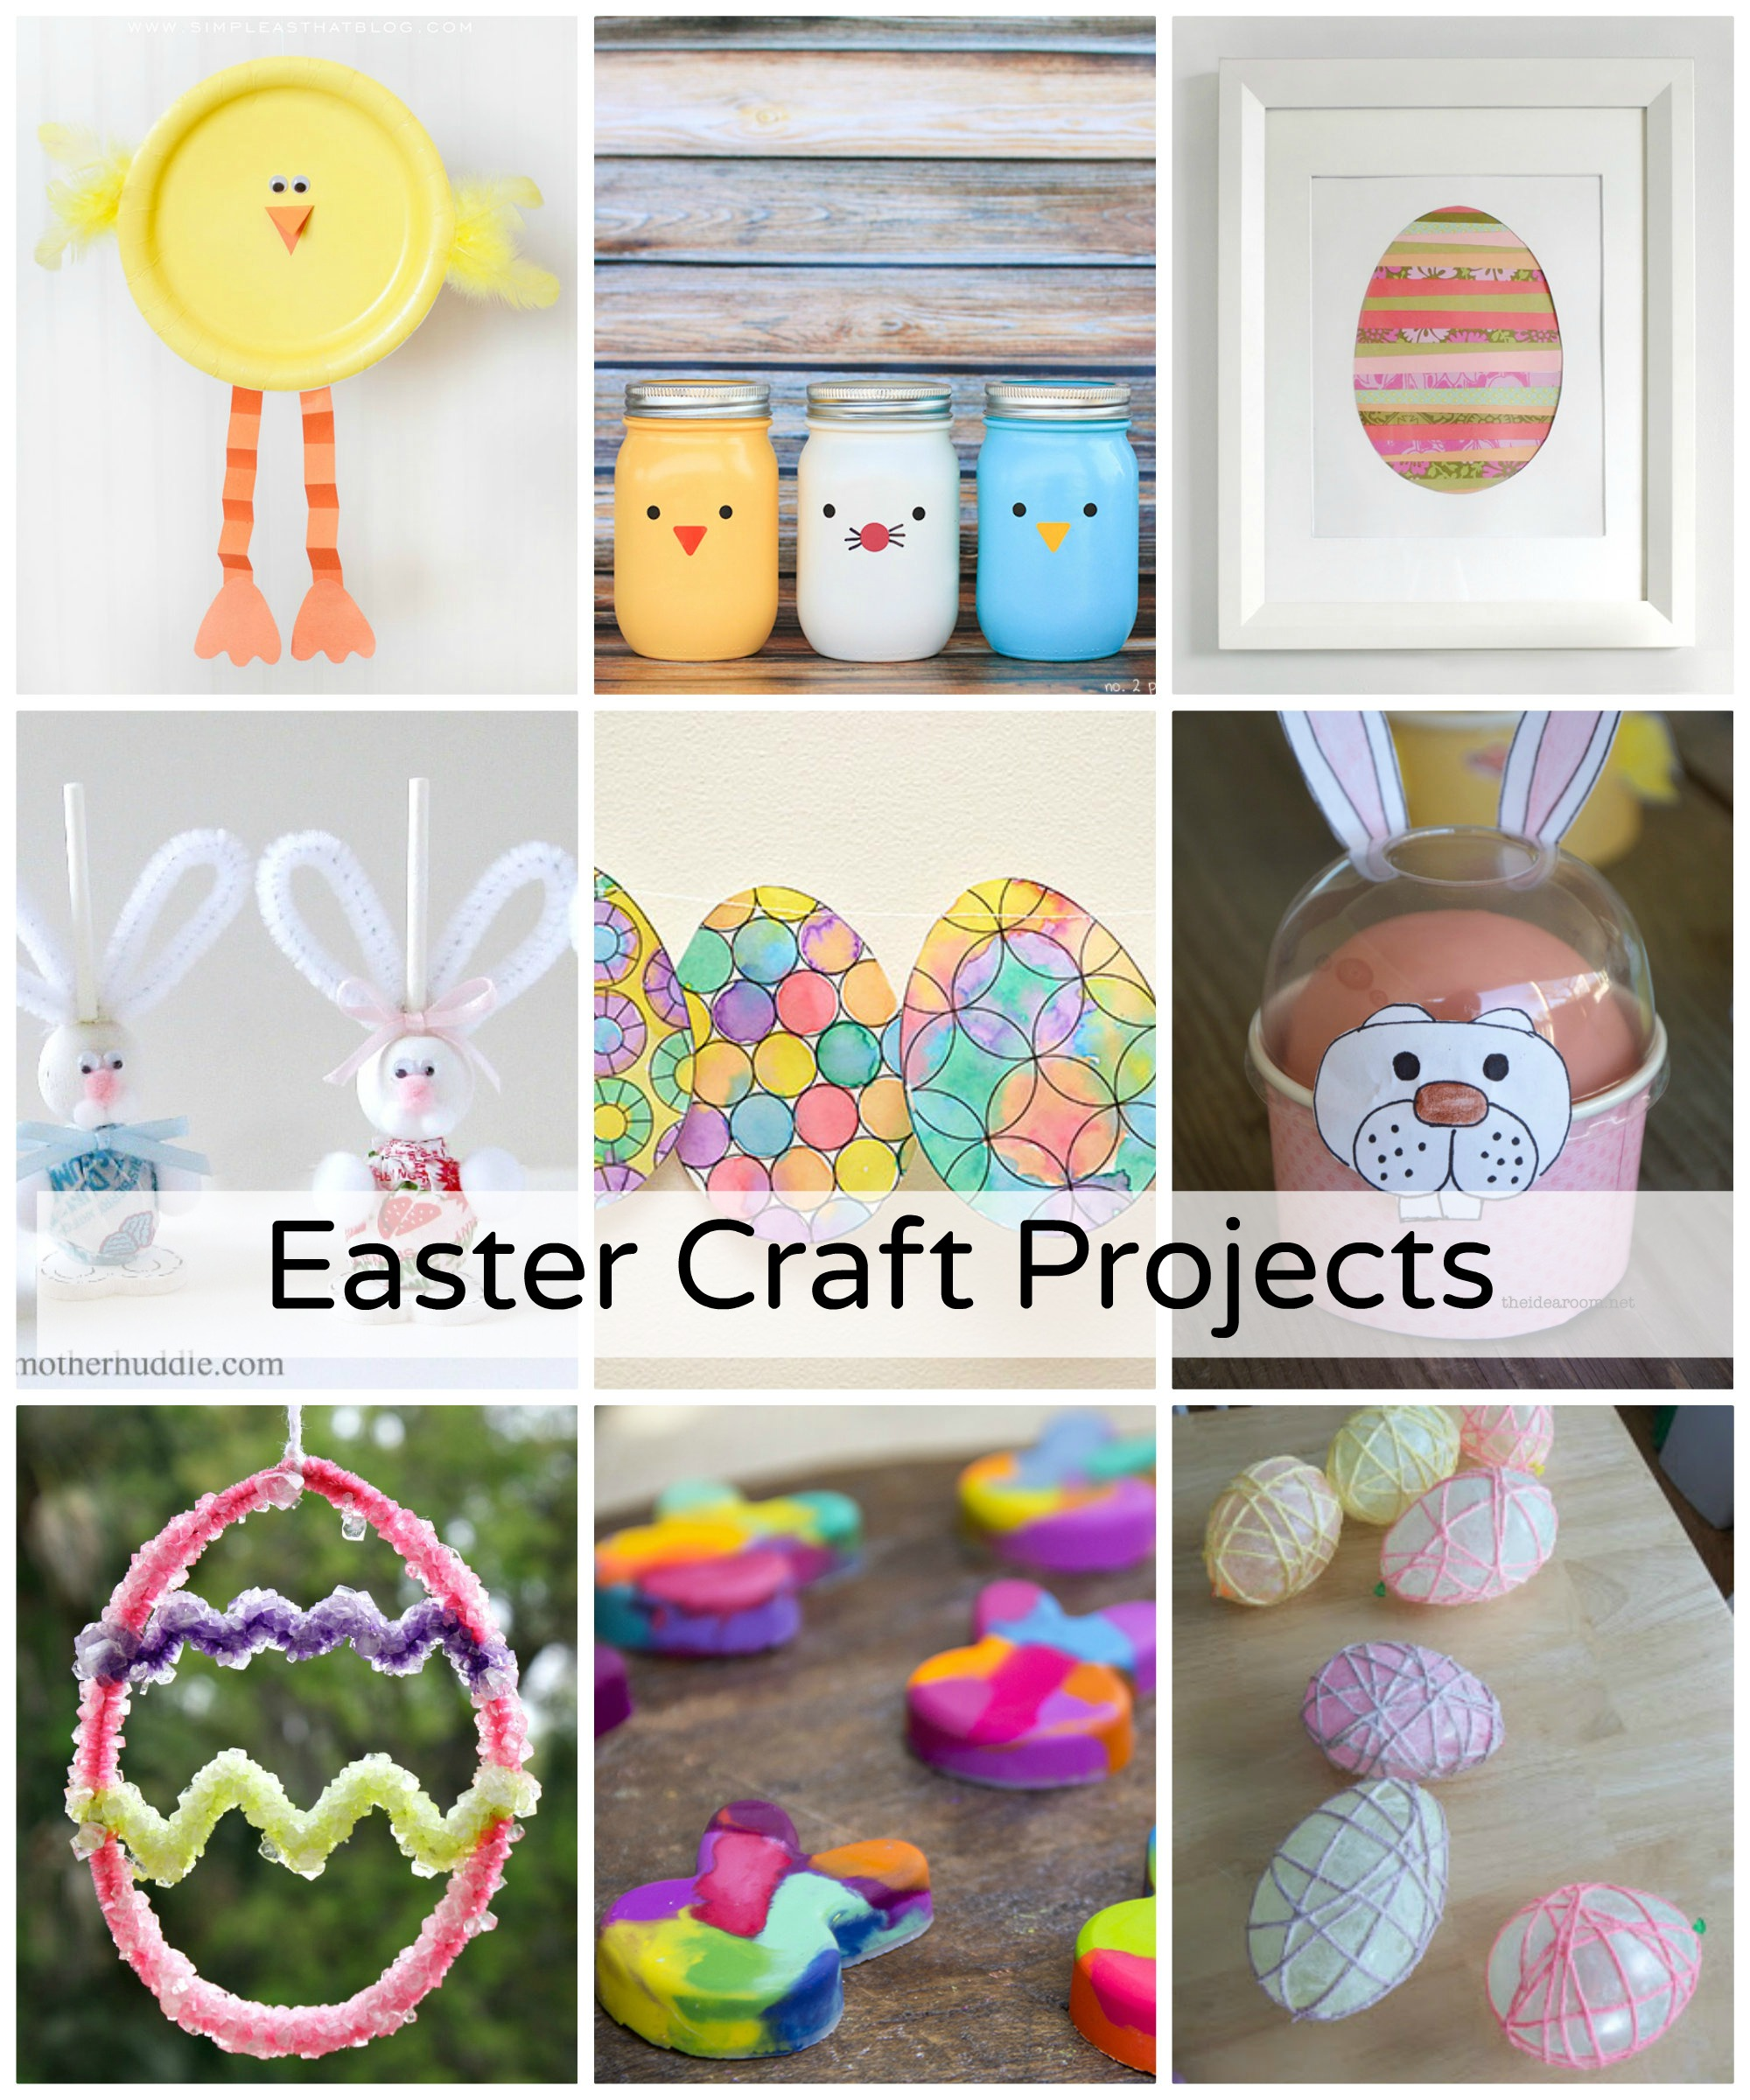 diy easy easter craft projects usa today bestselling author